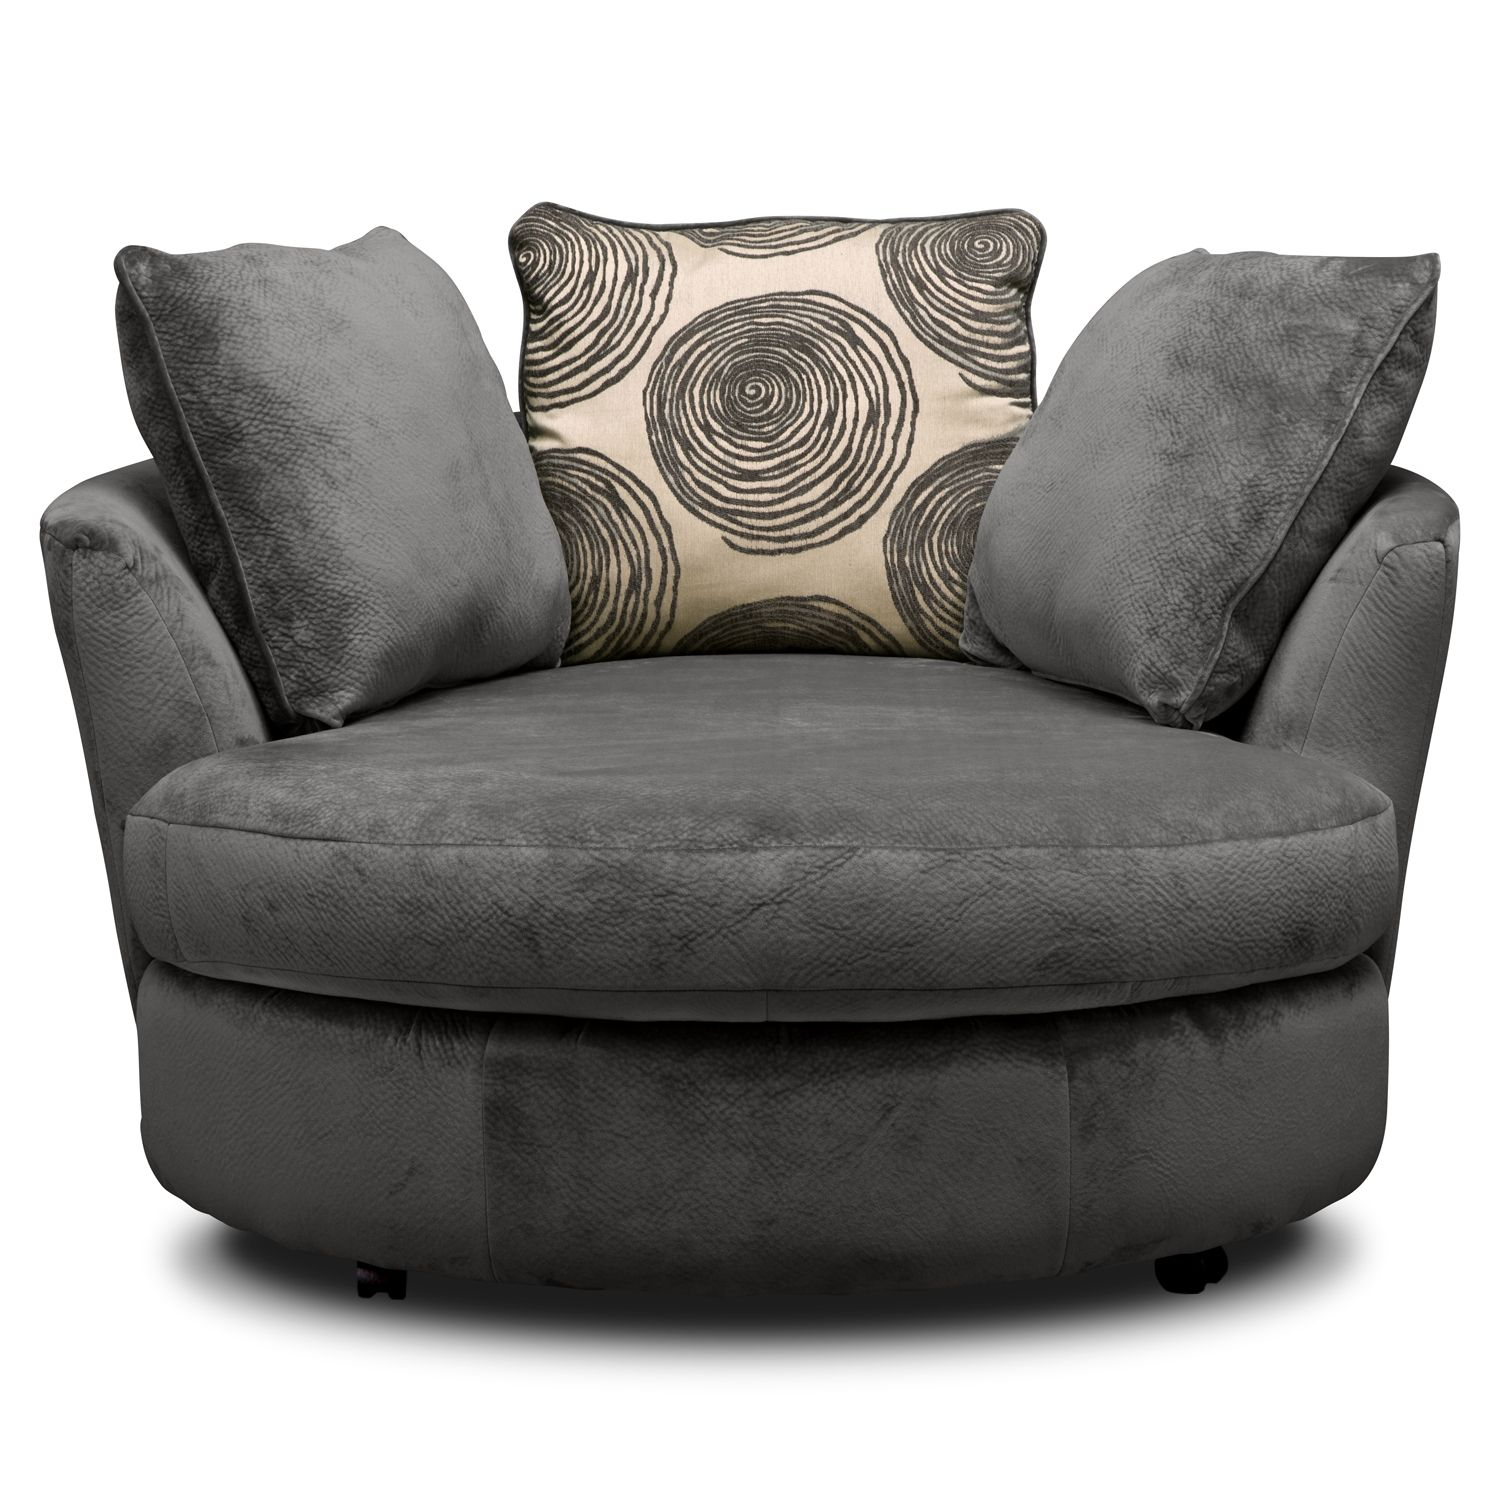 Cordoba Gray Upholstery Swivel Chair Value City Furniture Lounge Chair Bedroom Round Swivel Chair Swivel Chair